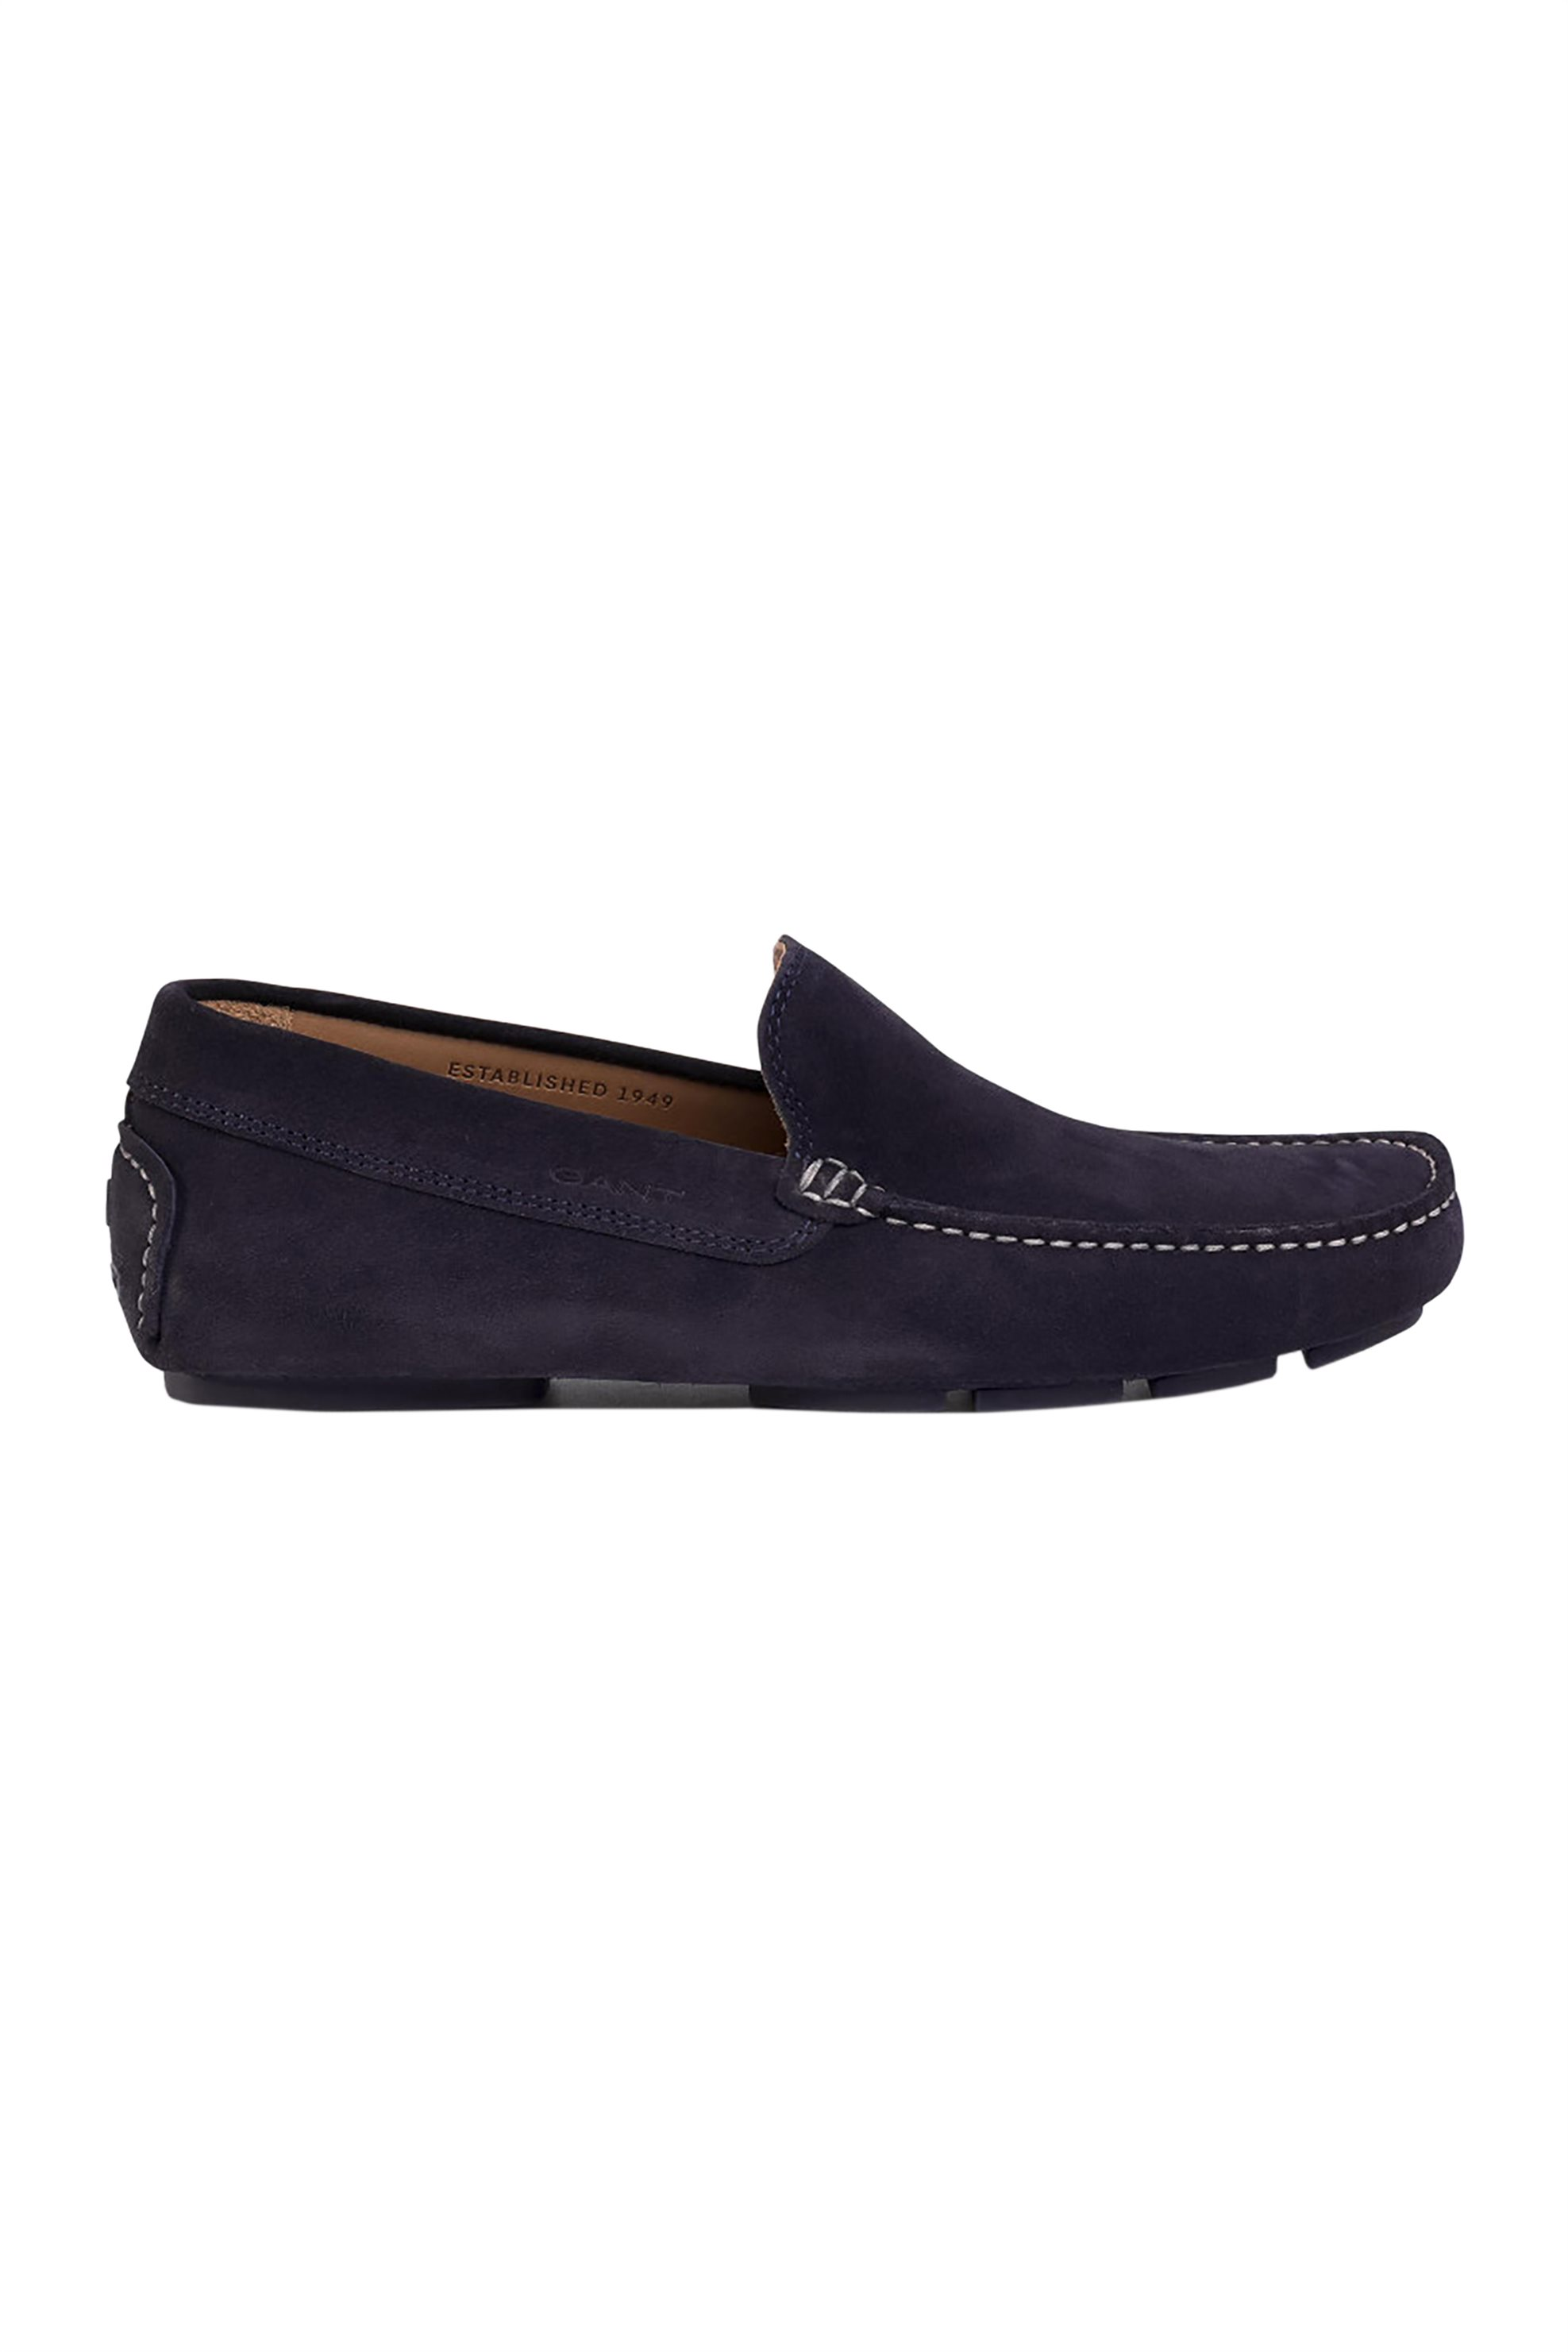 "Gant ανδρικά suede loafers ""Nicehill"" – 20673466 – Μπλε Σκούρο"